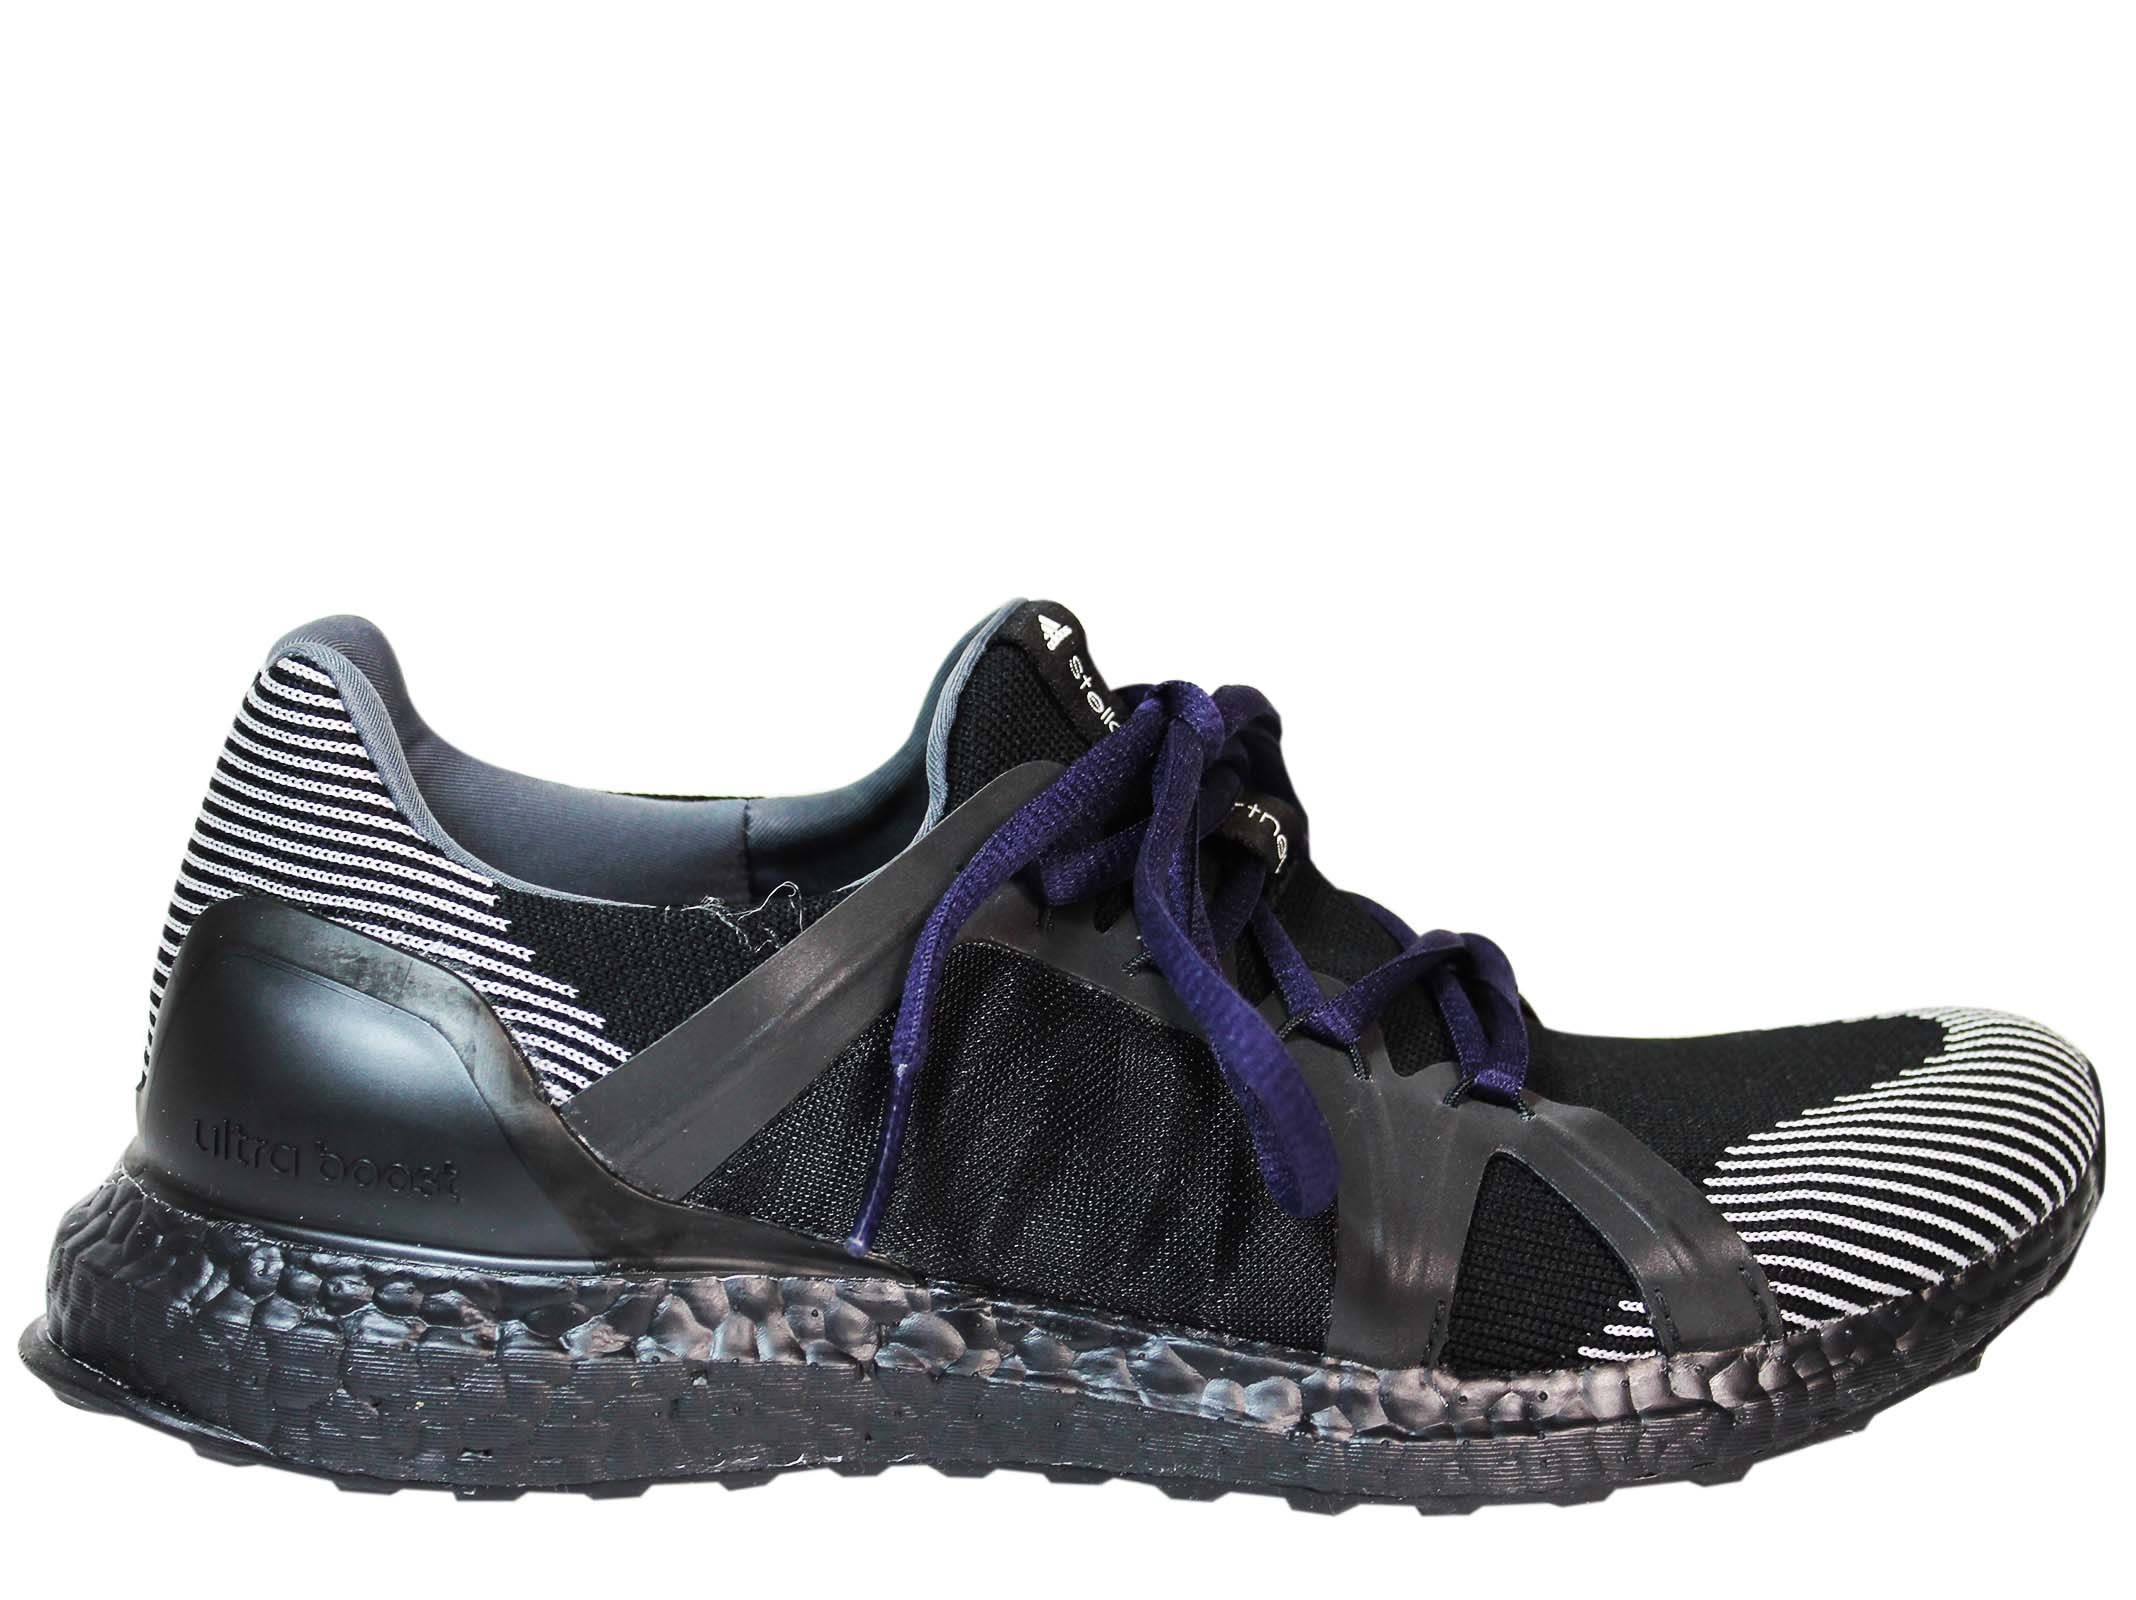 Adidas by Stella McCartney Black White Ultra Boost Low Sneakers